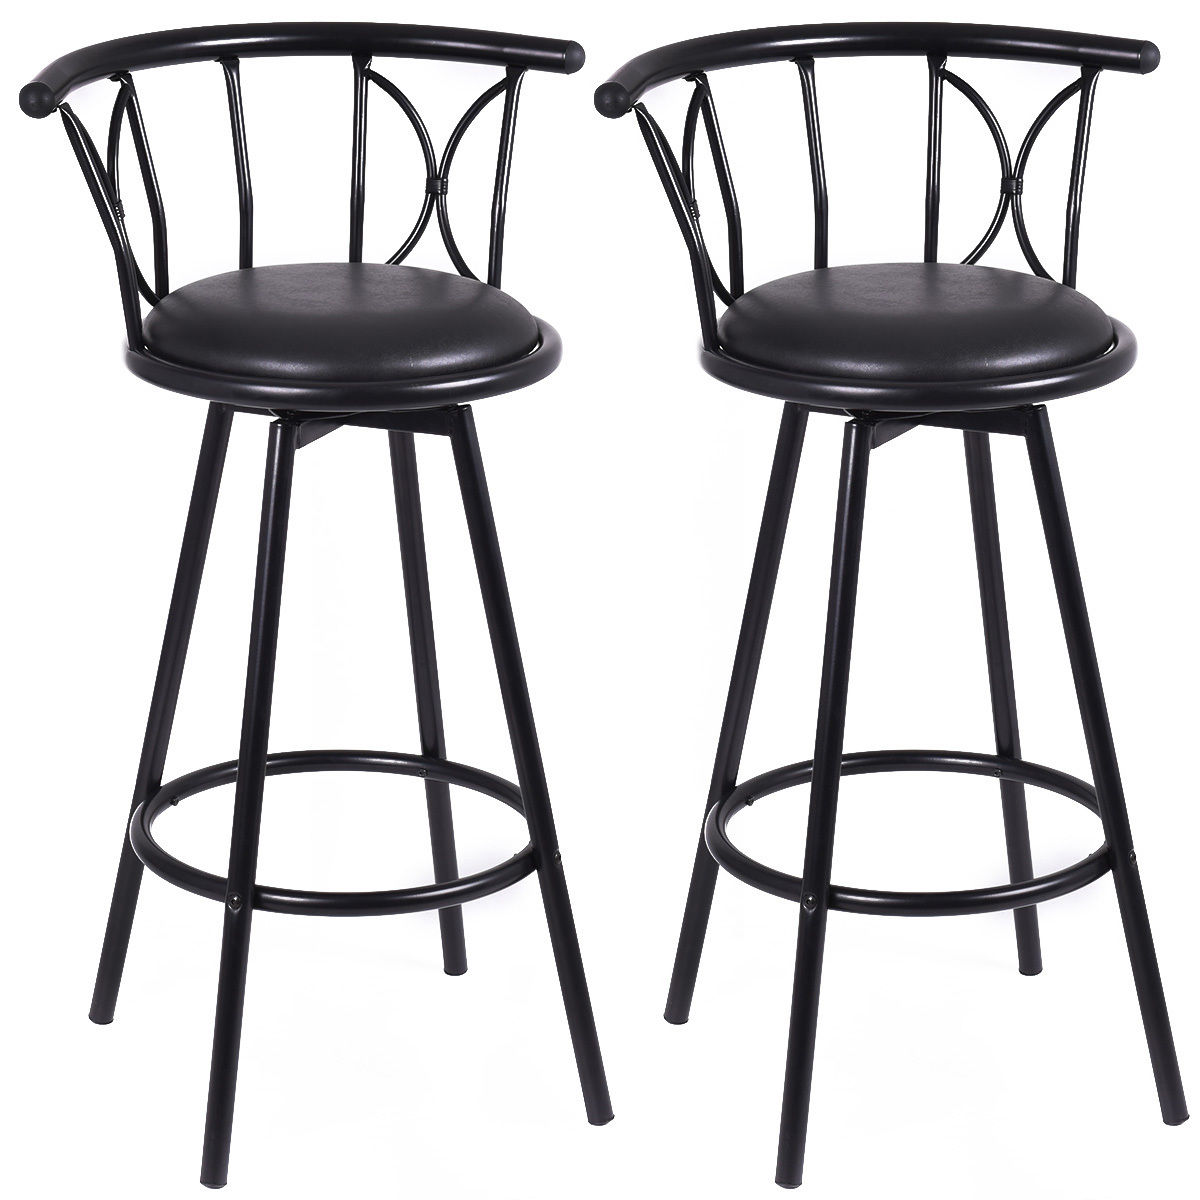 Giantex Set of 2 Black Barstools Modern Swivel Rotatable Chairs Steel Tall Counter Bar Chair Home Bar Furniture HW51779 manitobah унты tall grain mukluk женск 11 black черный